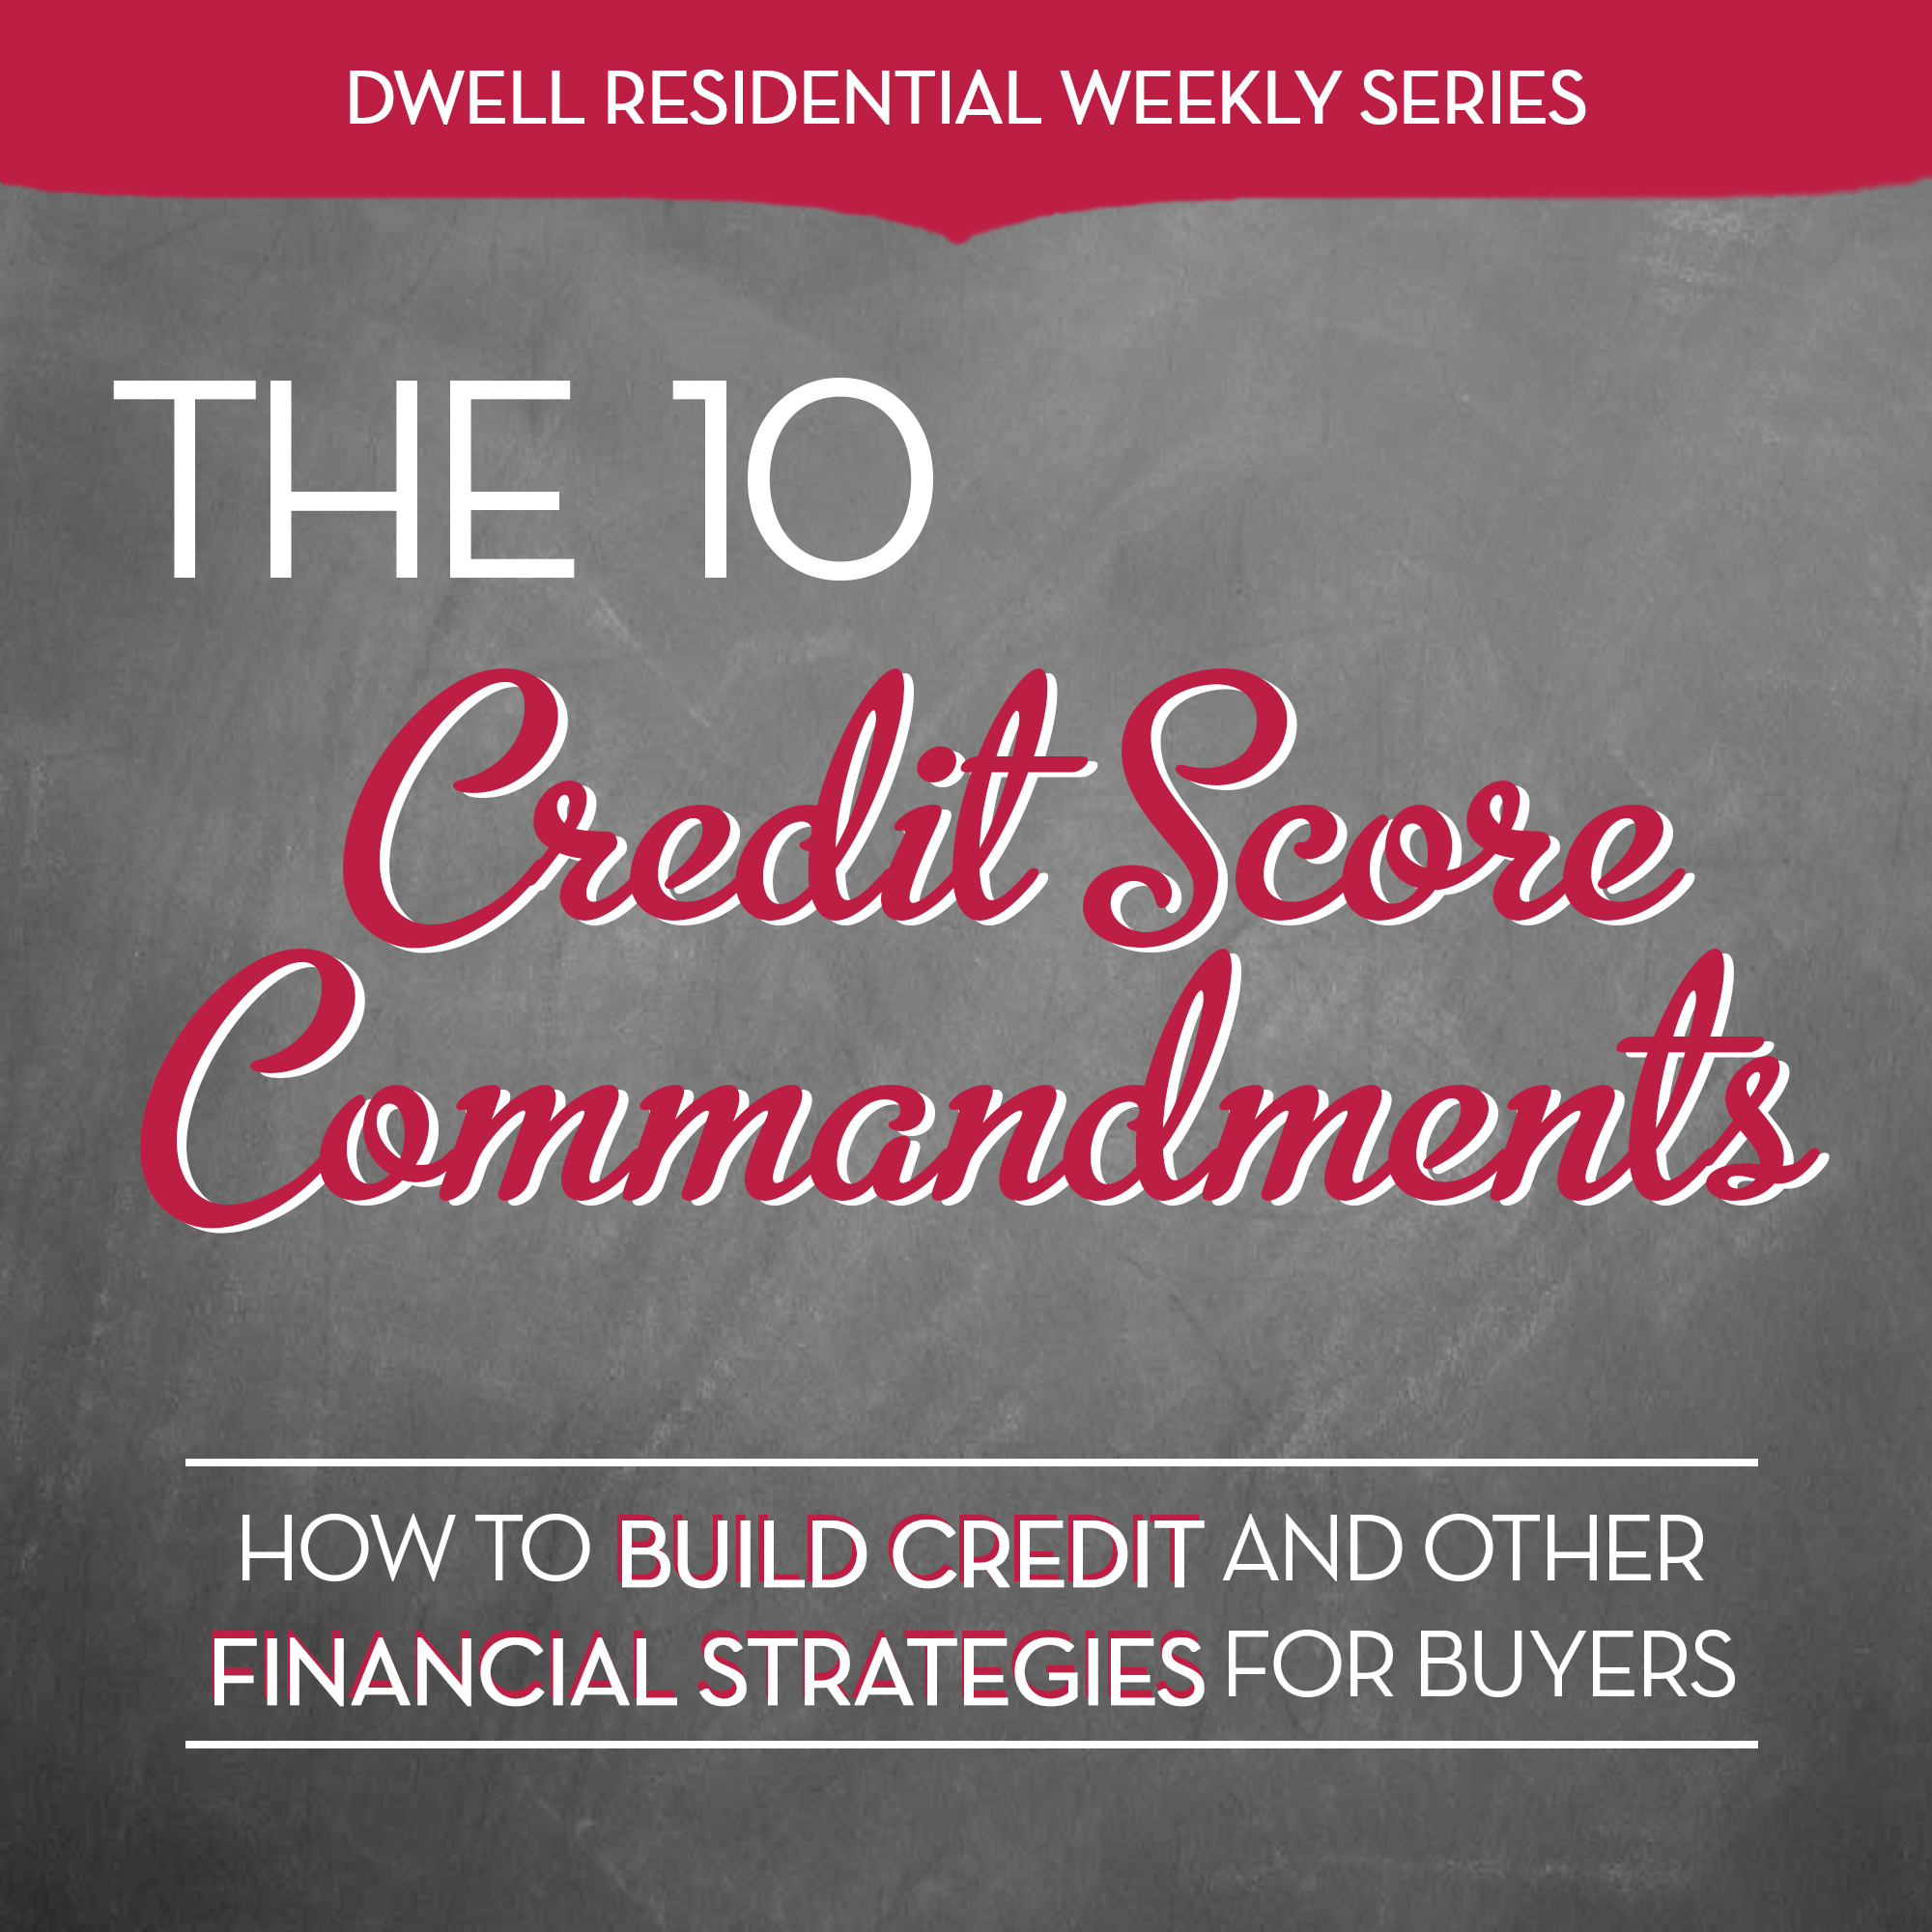 They're your handy reminder of what NOT to do – so you can keep your credit score on track from start to finish. Better yet, follow them well before you even start looking for a home so your finances and score will be well regarded by lenders.